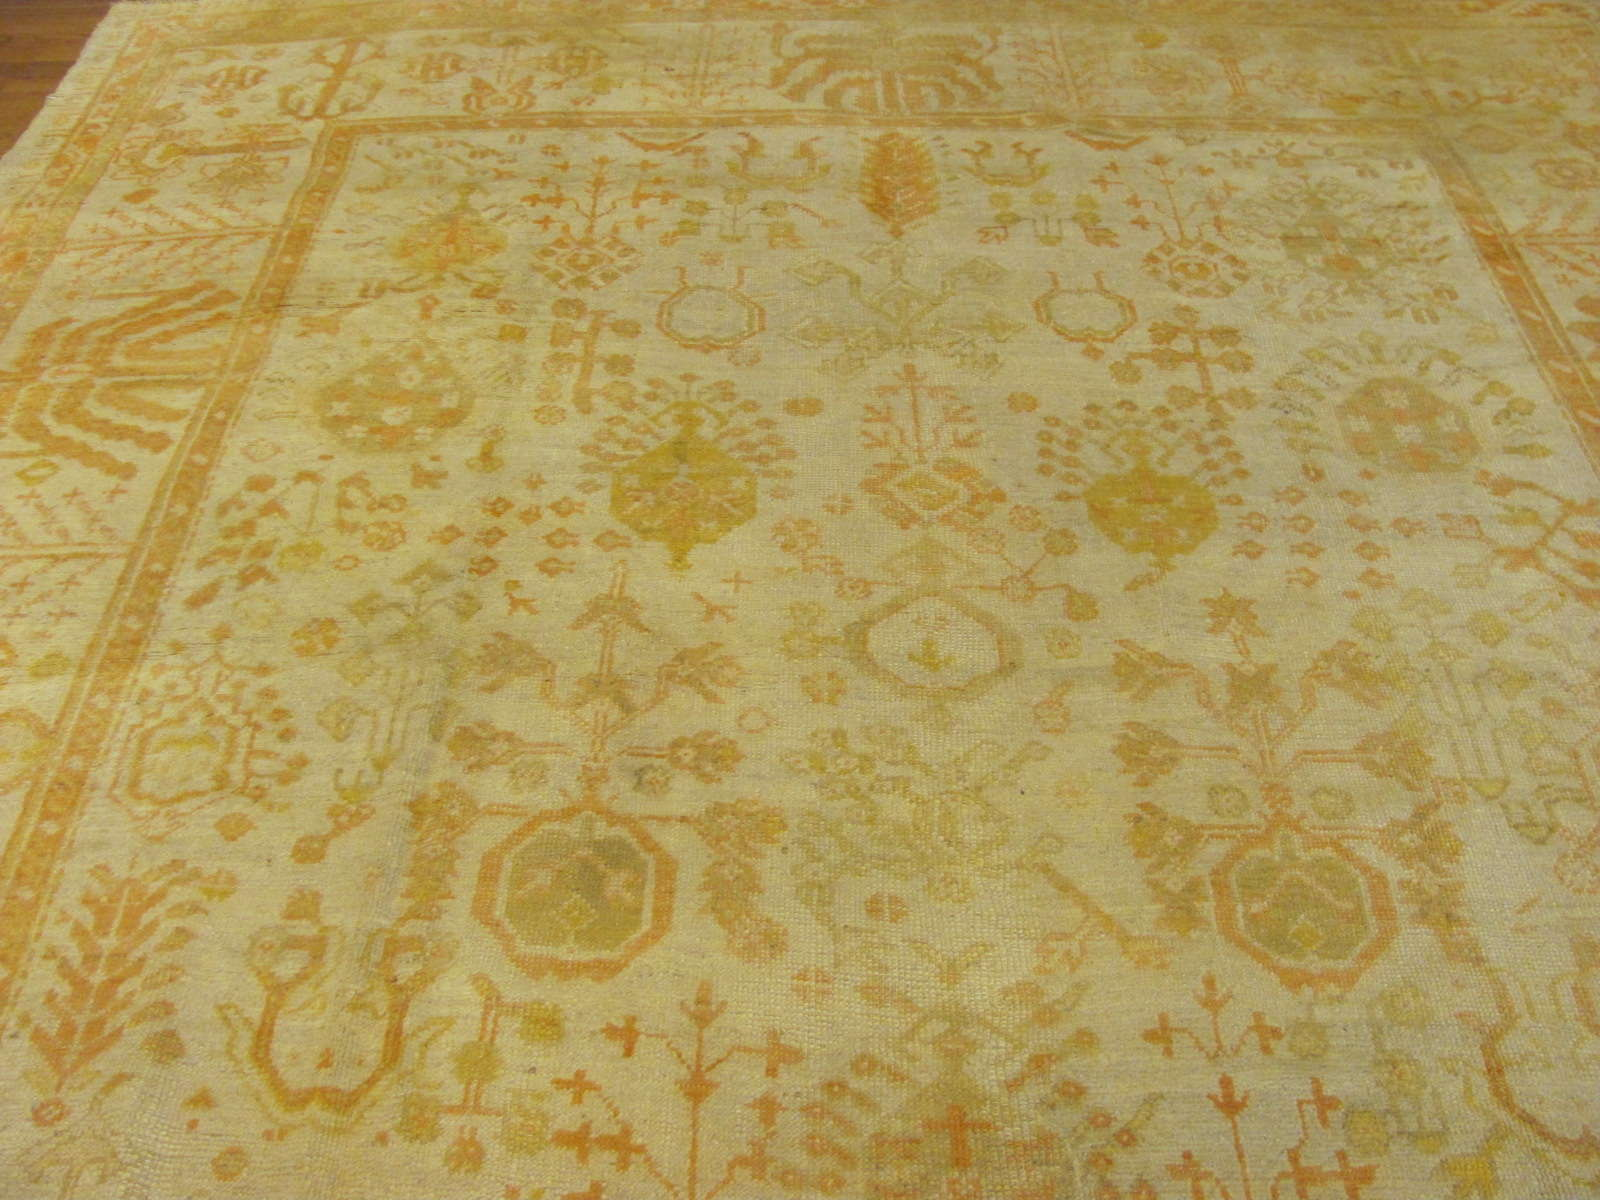 24813 antique anatolian turkish oushak 9,3x13,10-1